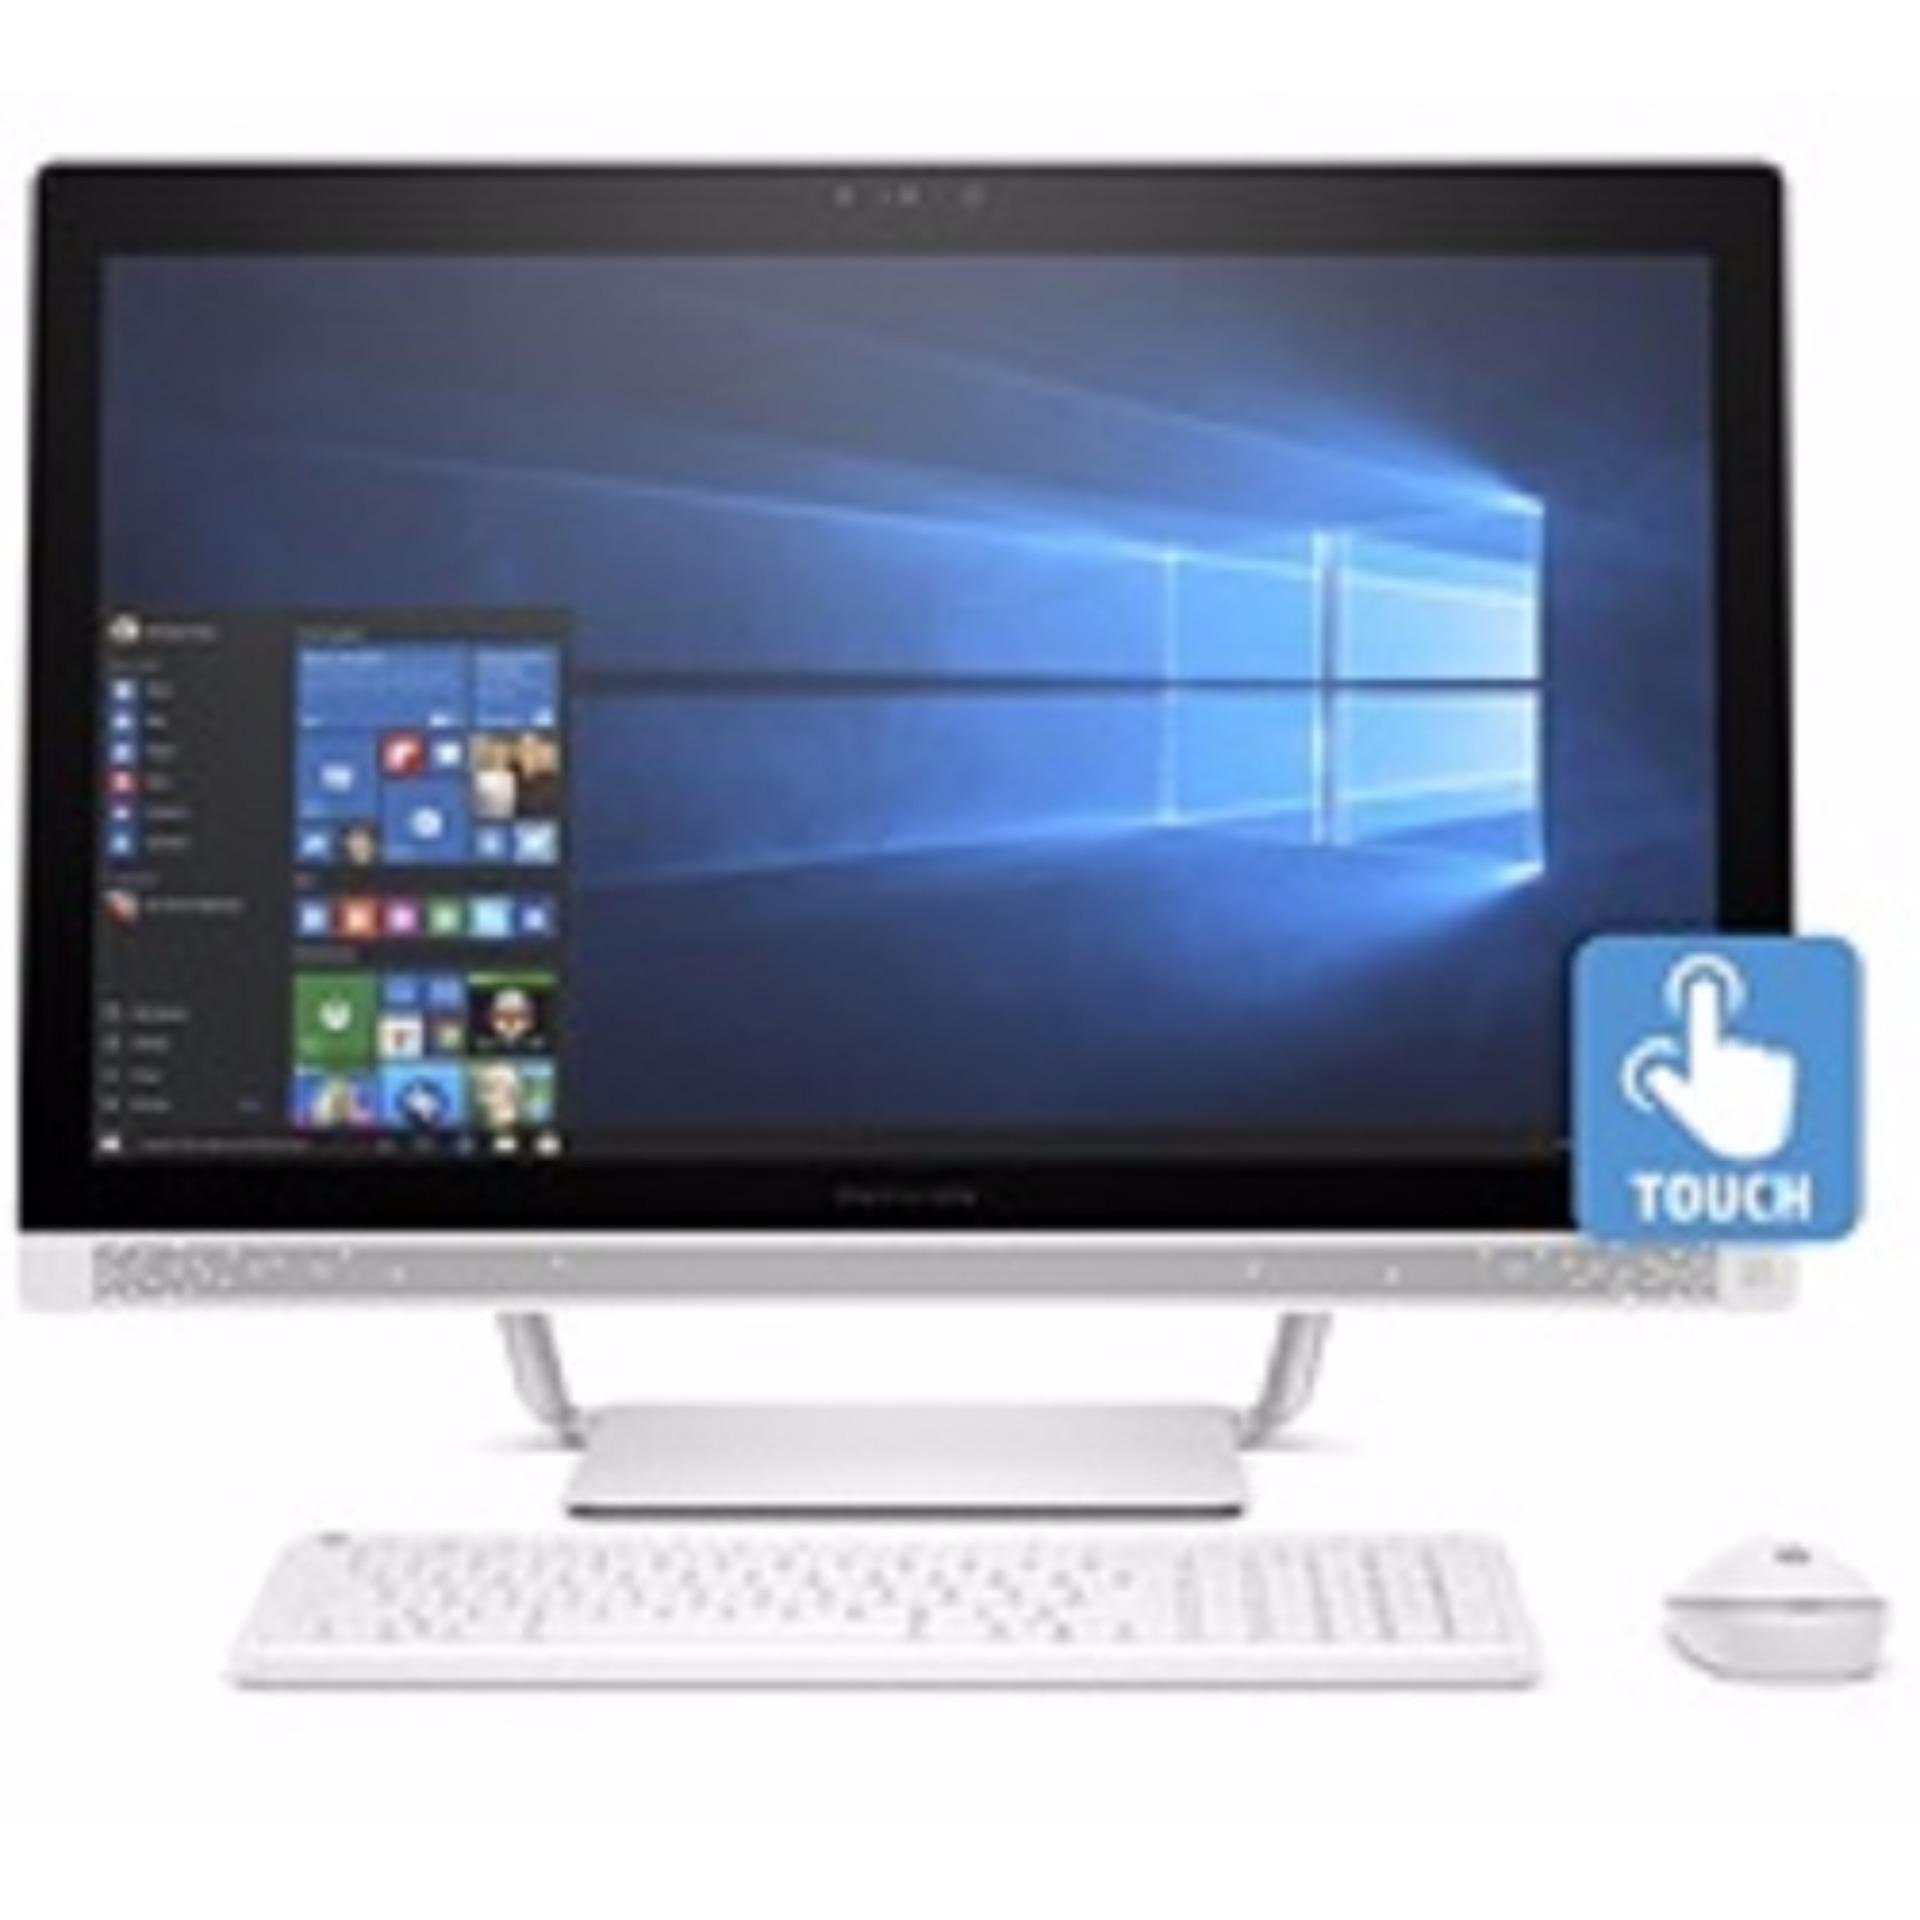 HP 24-R074D PAVILION 24-R074D (2NK70AA) W 24IN TOUCH AIO PC INTEL CORE I7-7700T 8GB 128GB SSD+1TB HDD WIN 10 TOUCH